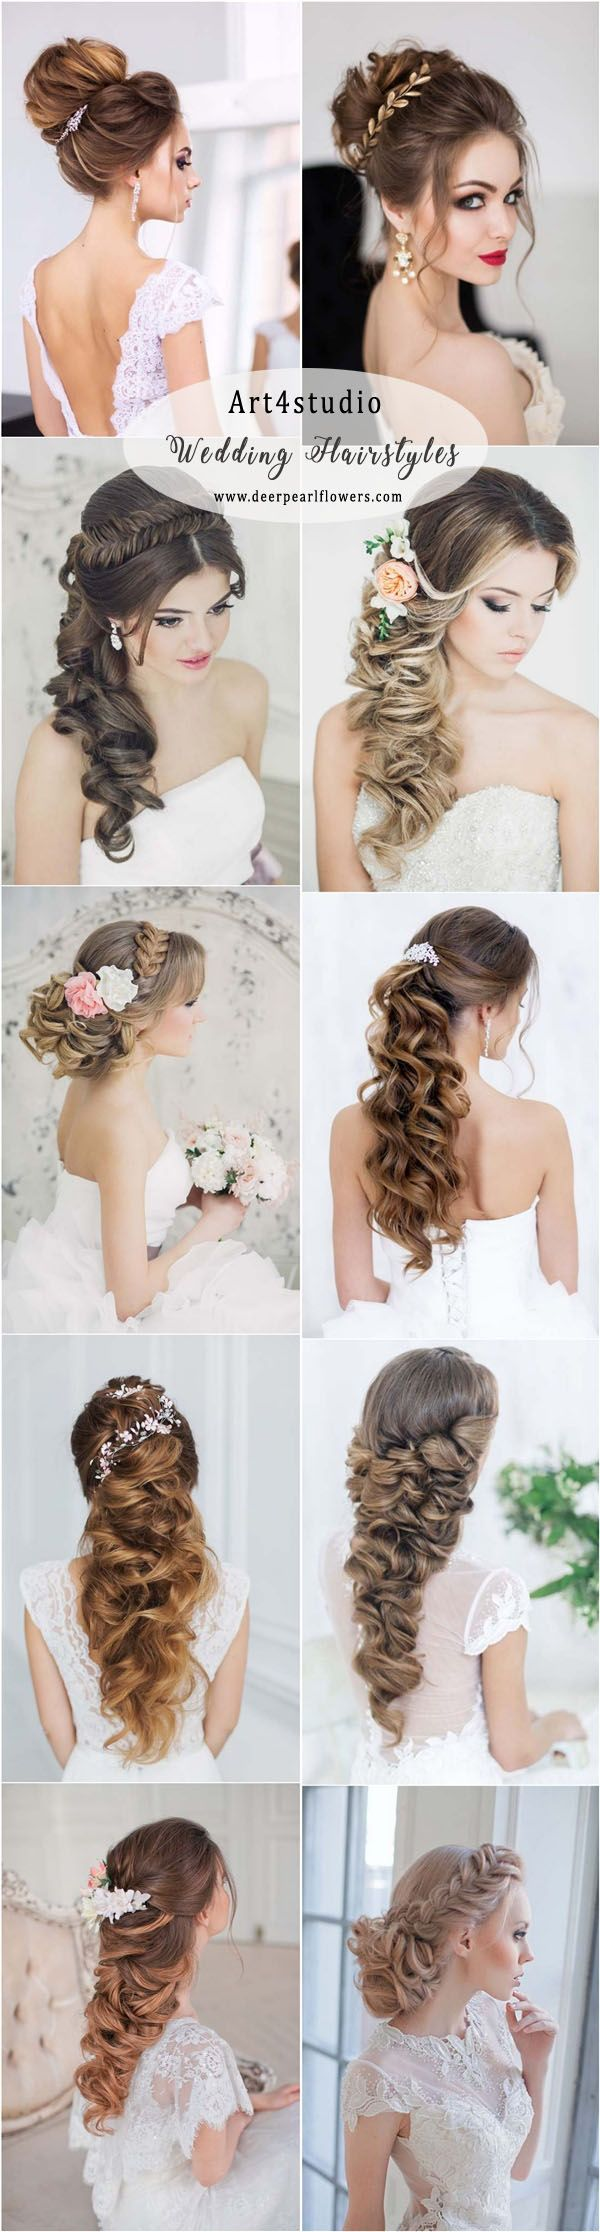 Top 30 Long Wedding Hairstyles for Bride from Art4studio | Updos ...